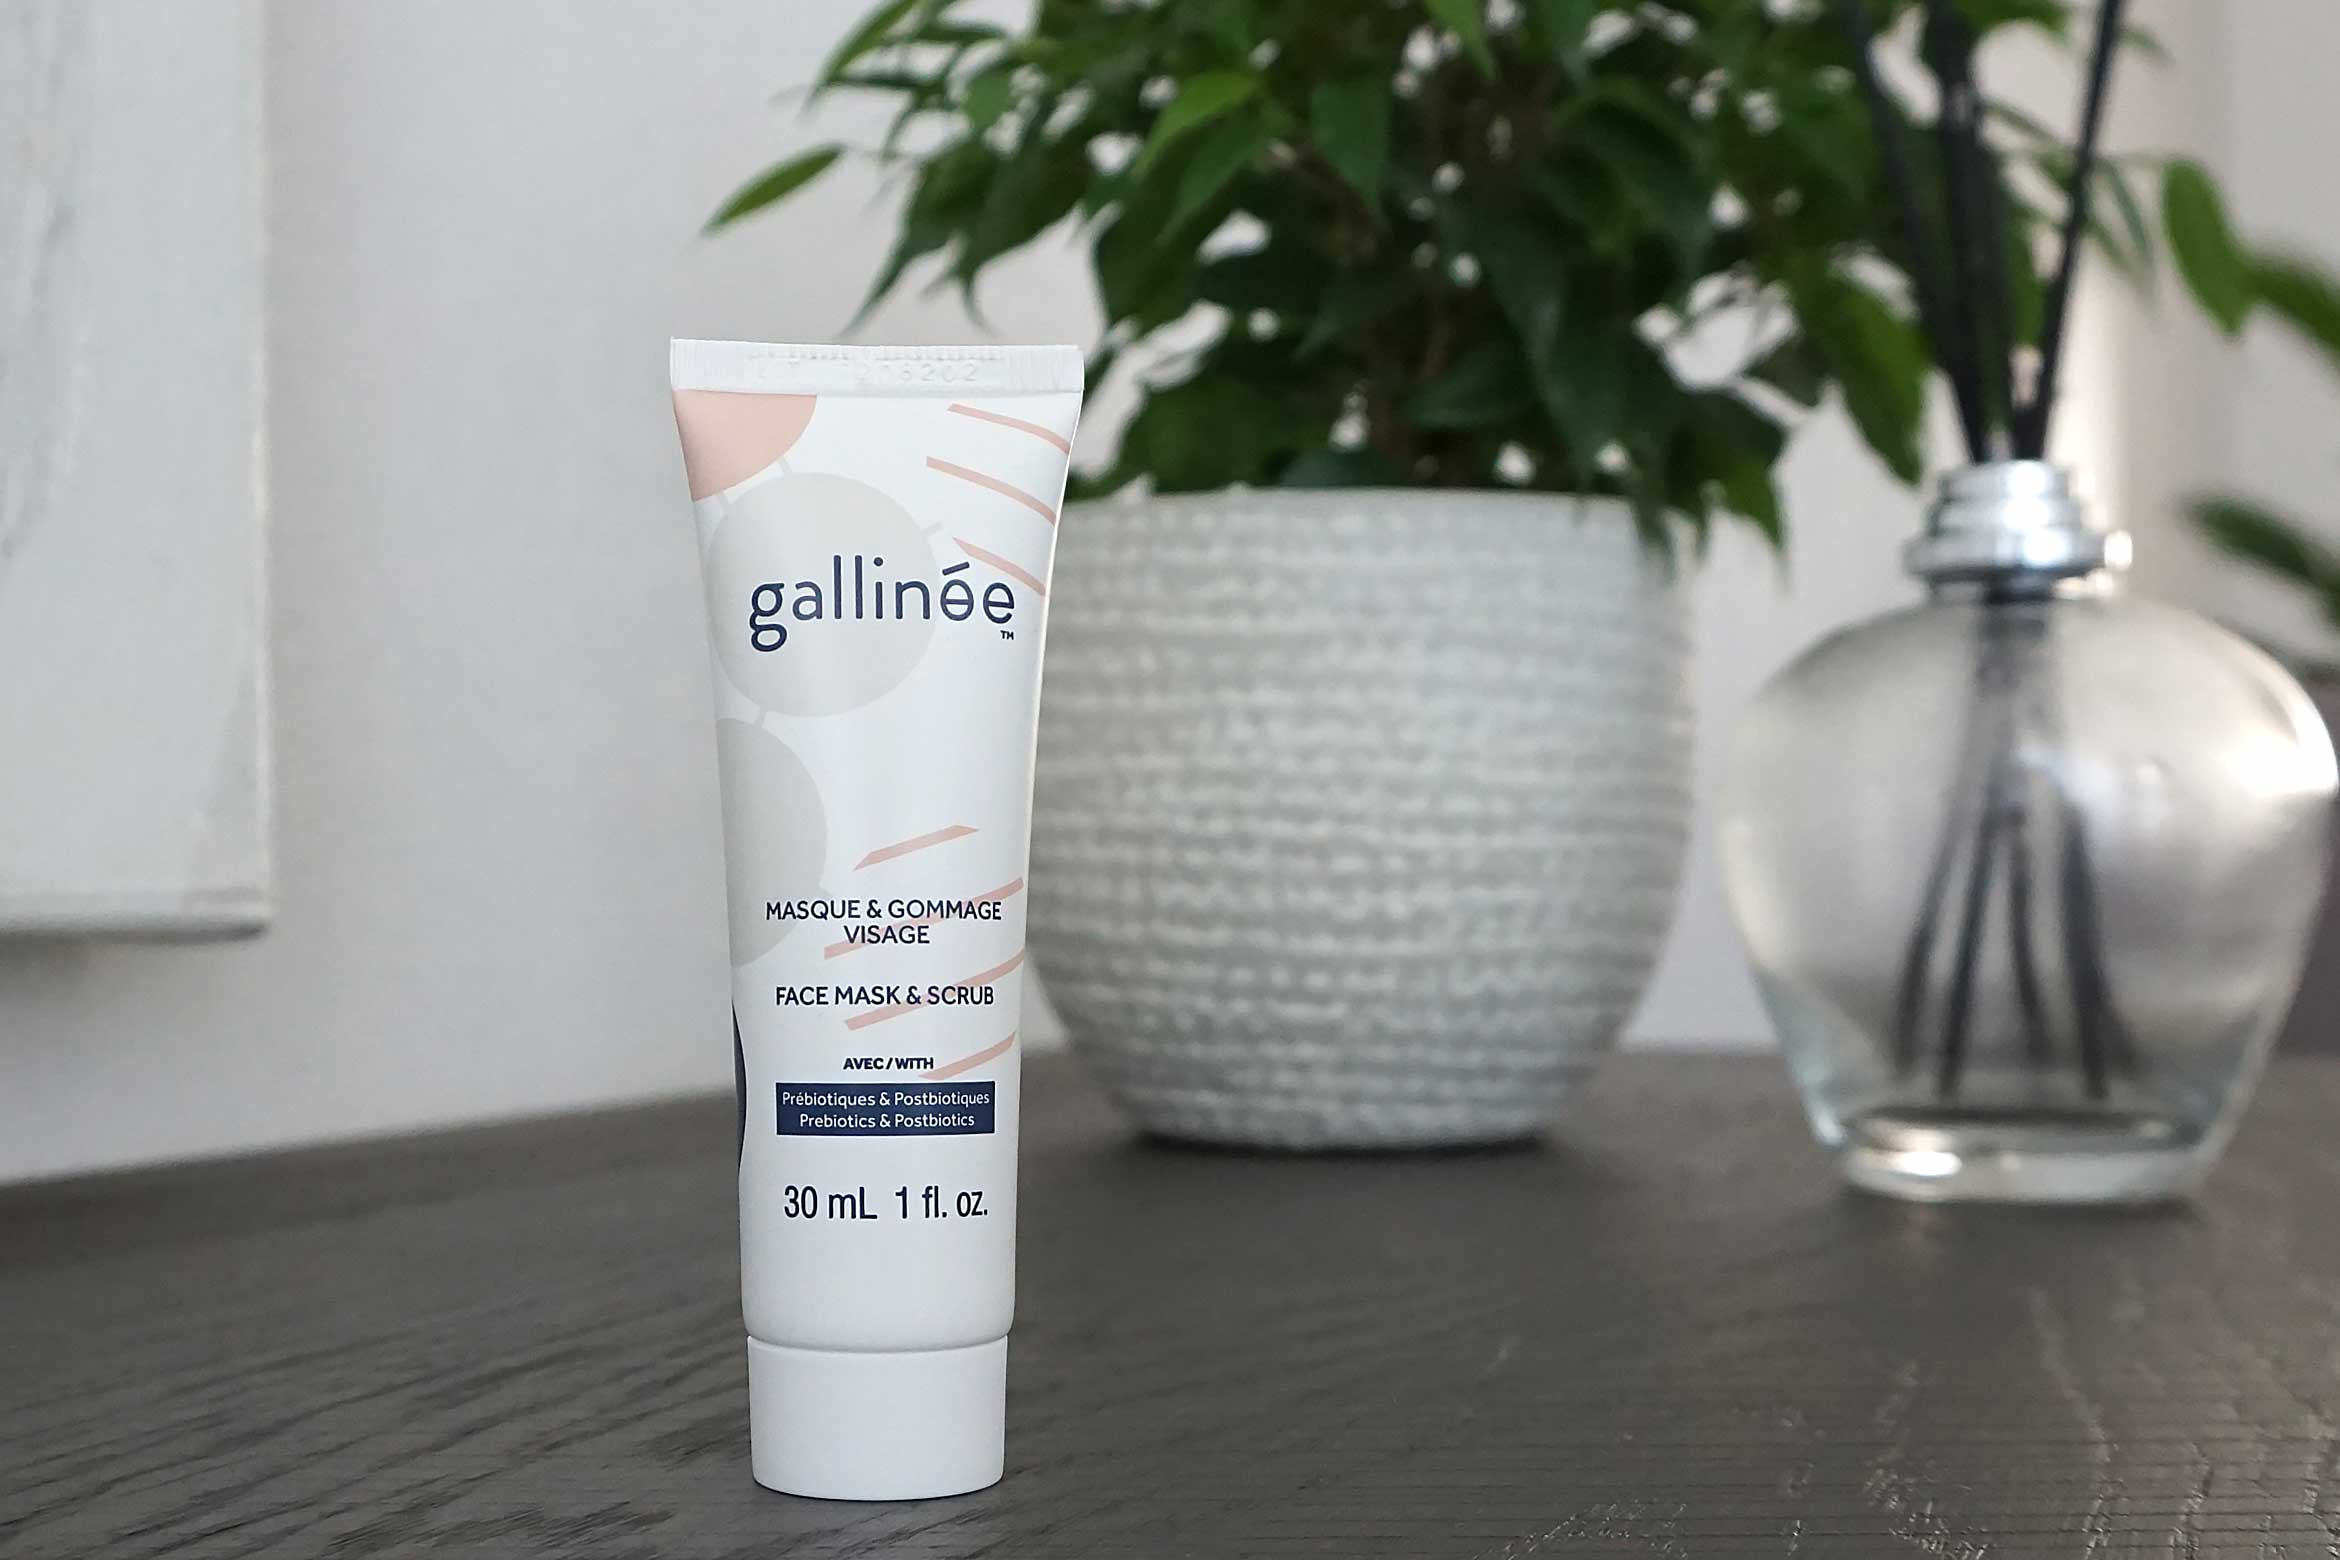 gallinee face mask scrub review